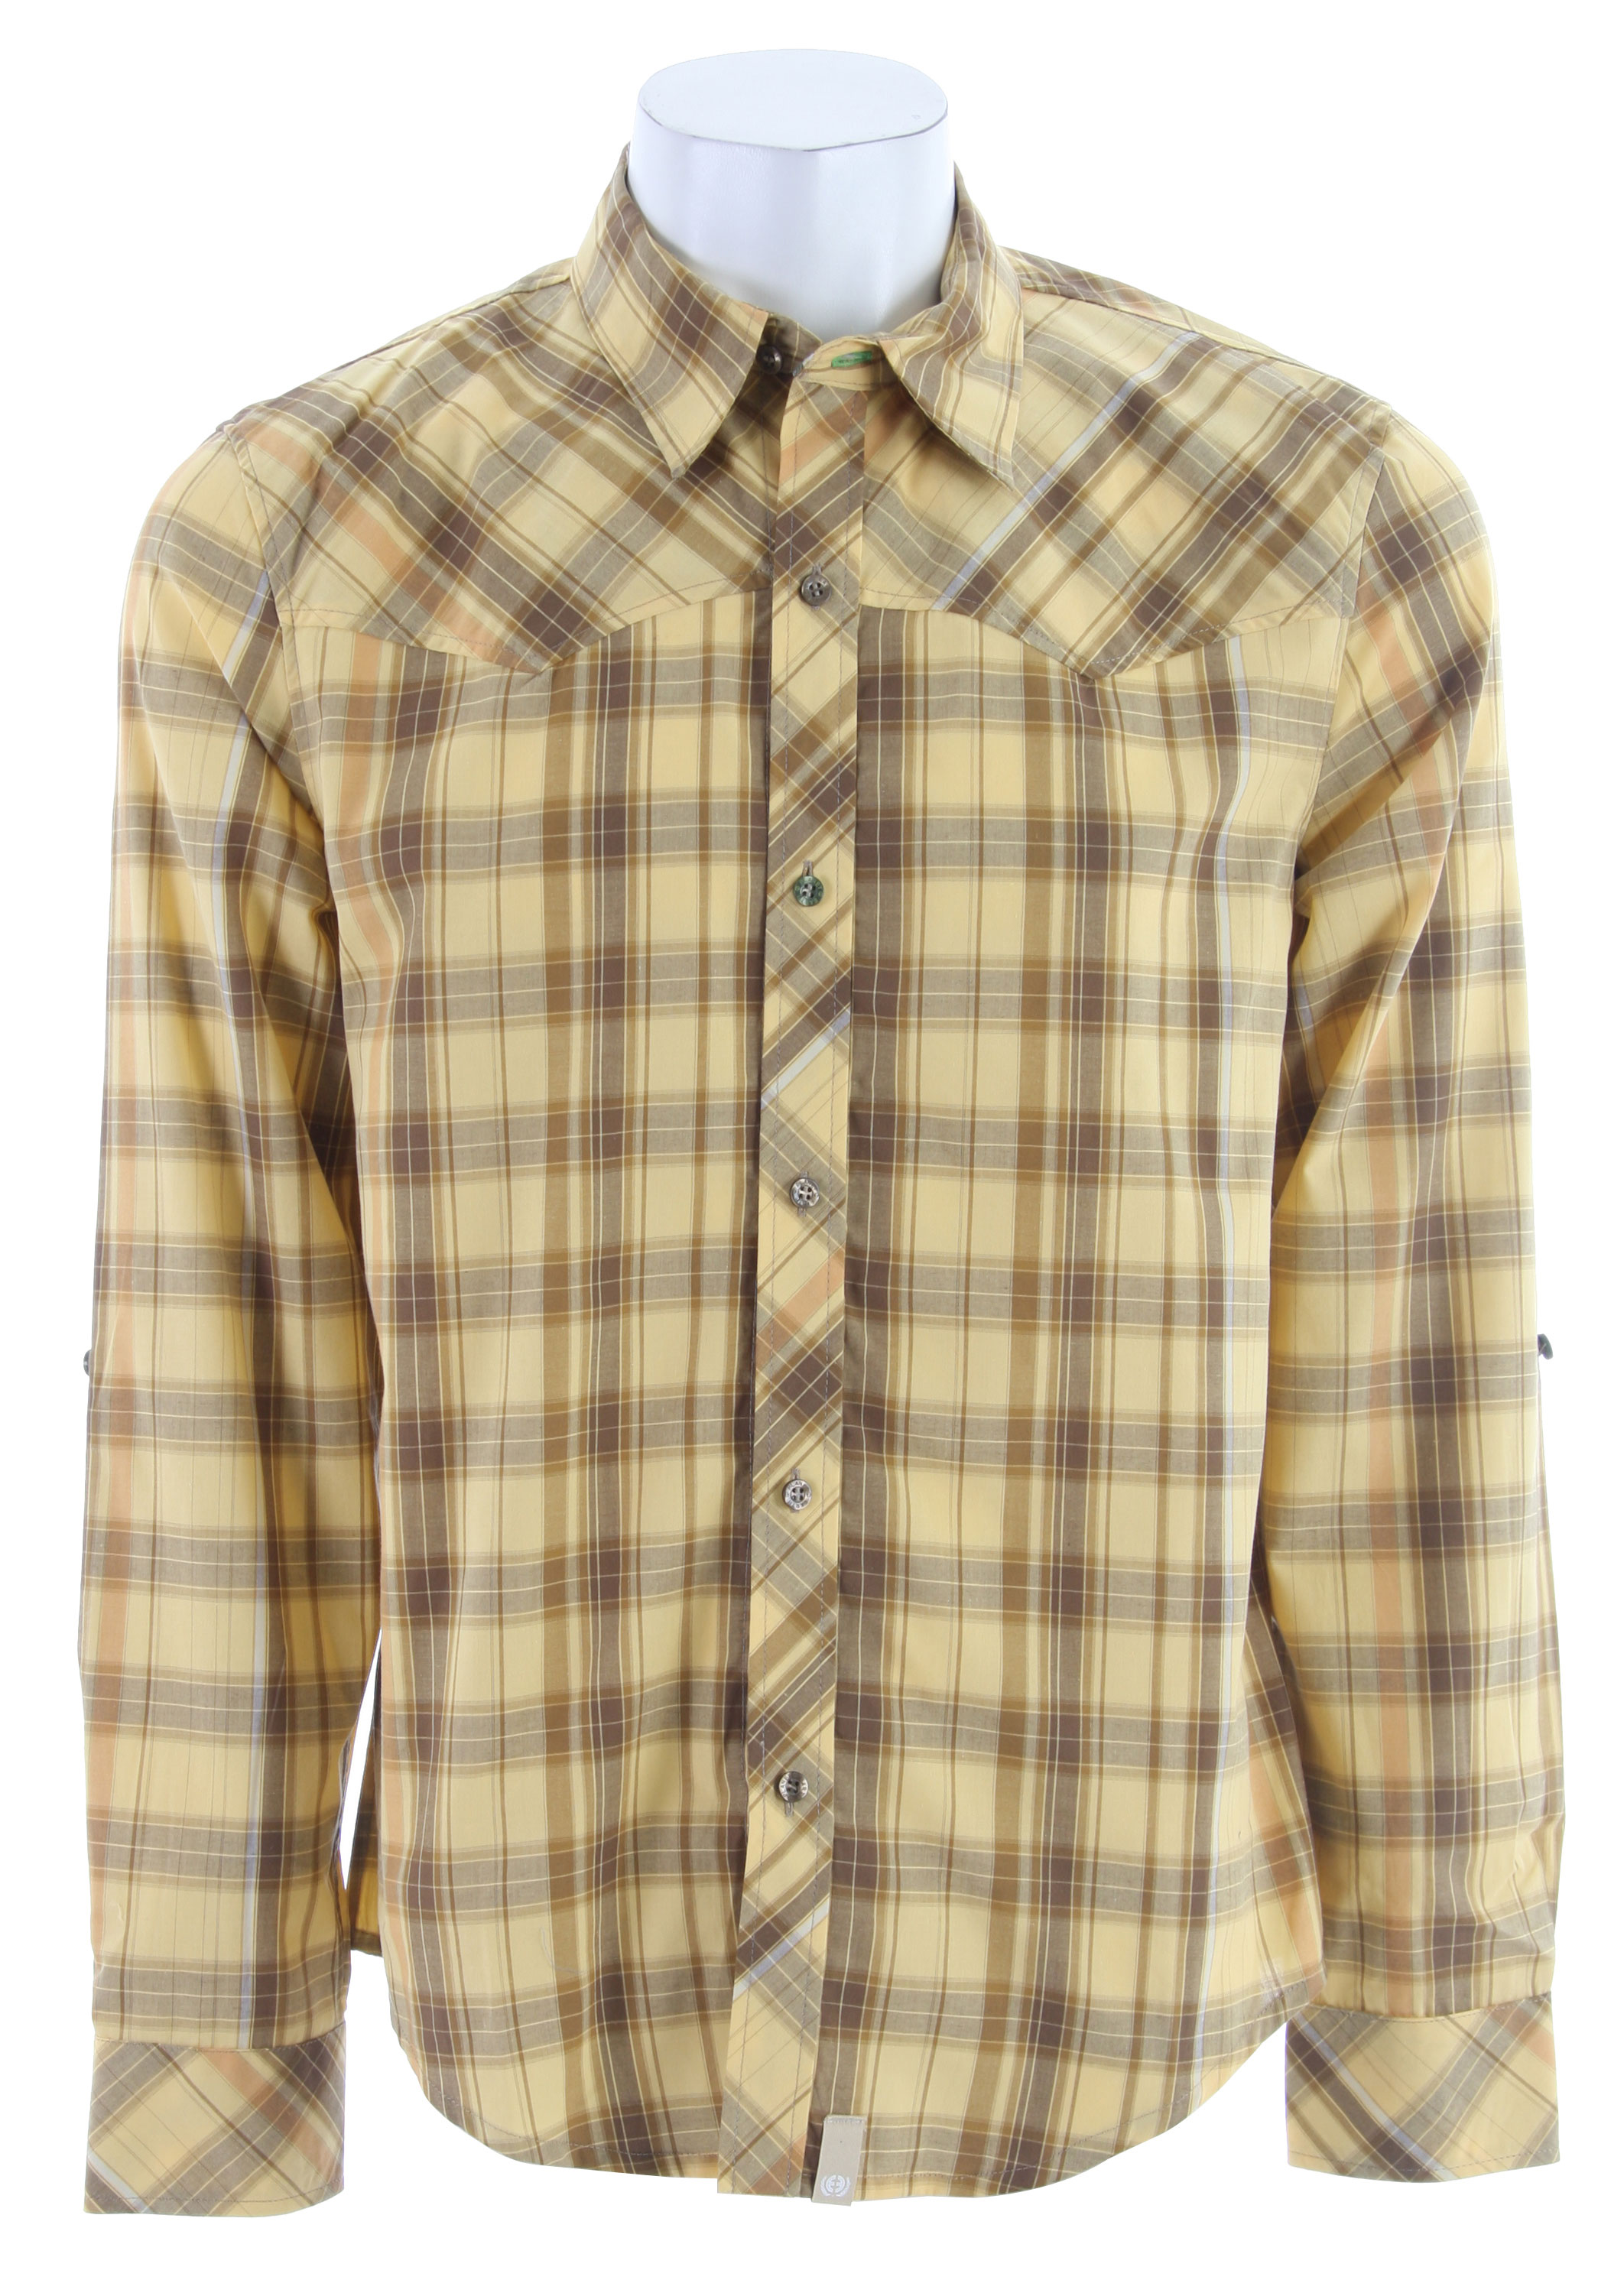 Planet Earth Ranger L/S Shirt Brown Plaid - $20.95